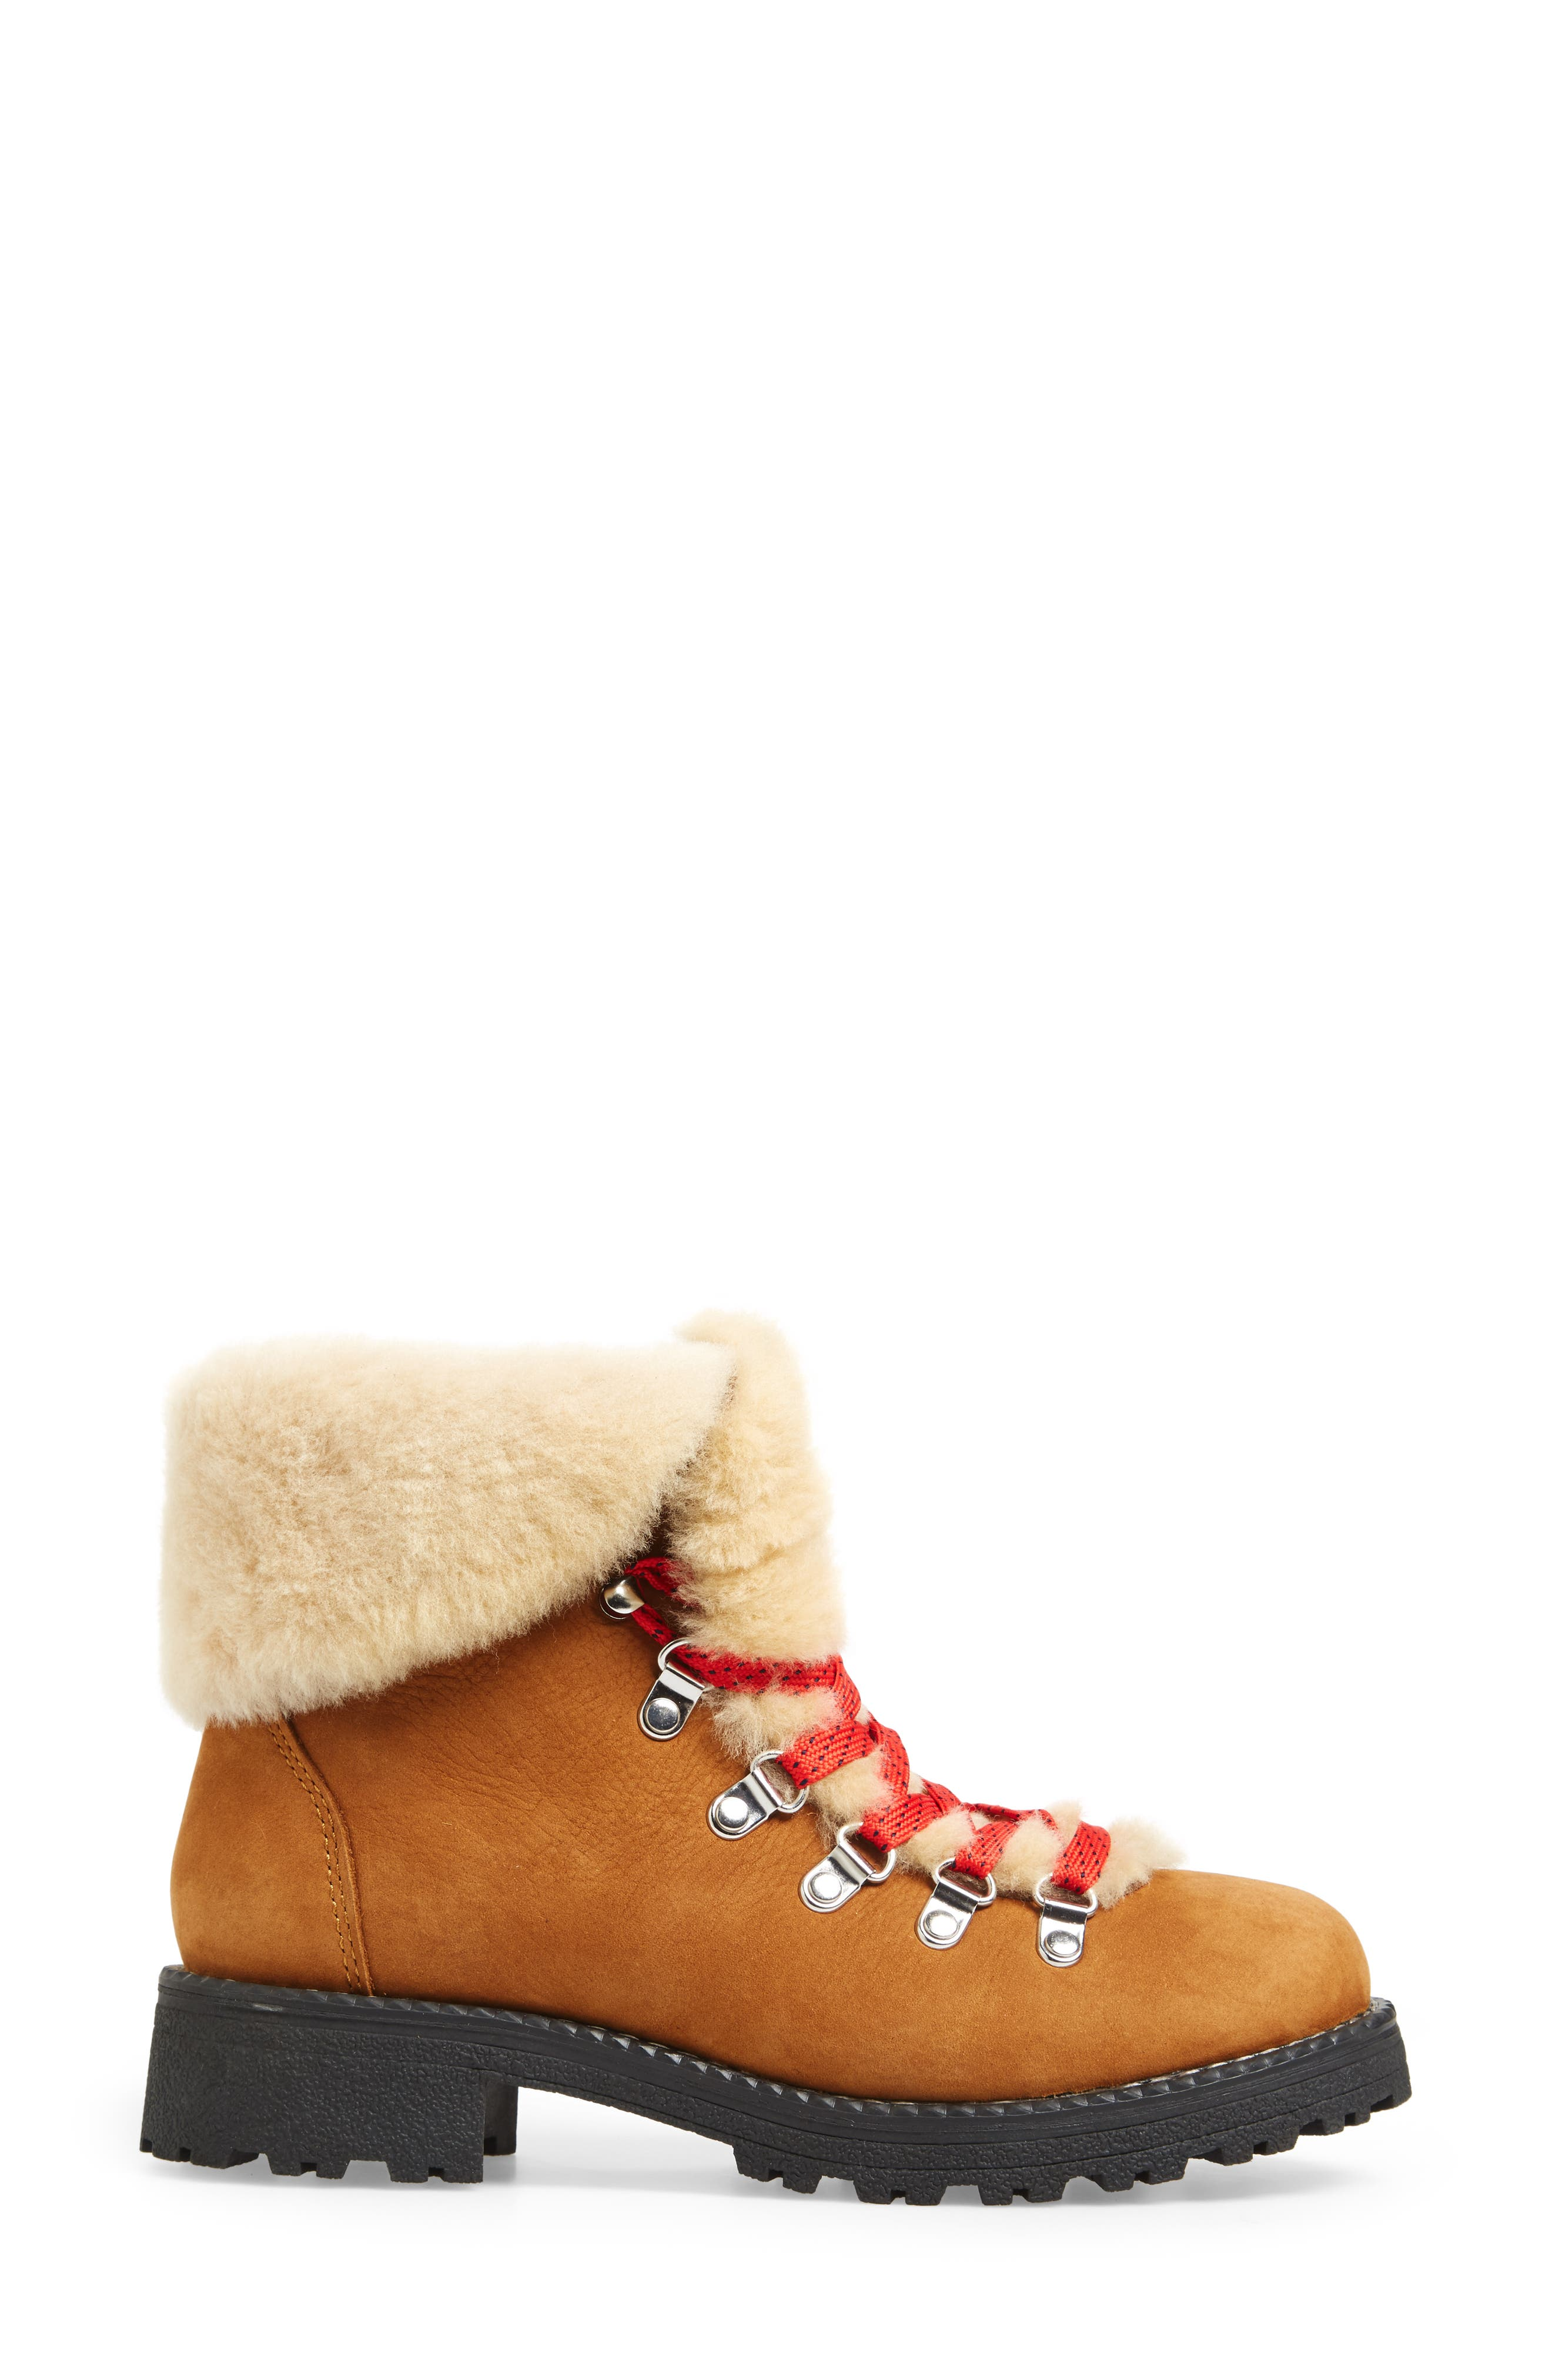 J.CREW, Nordic Genuine Shearling Cuff Winter Boot, Alternate thumbnail 3, color, GLAZED PECAN LEATHER